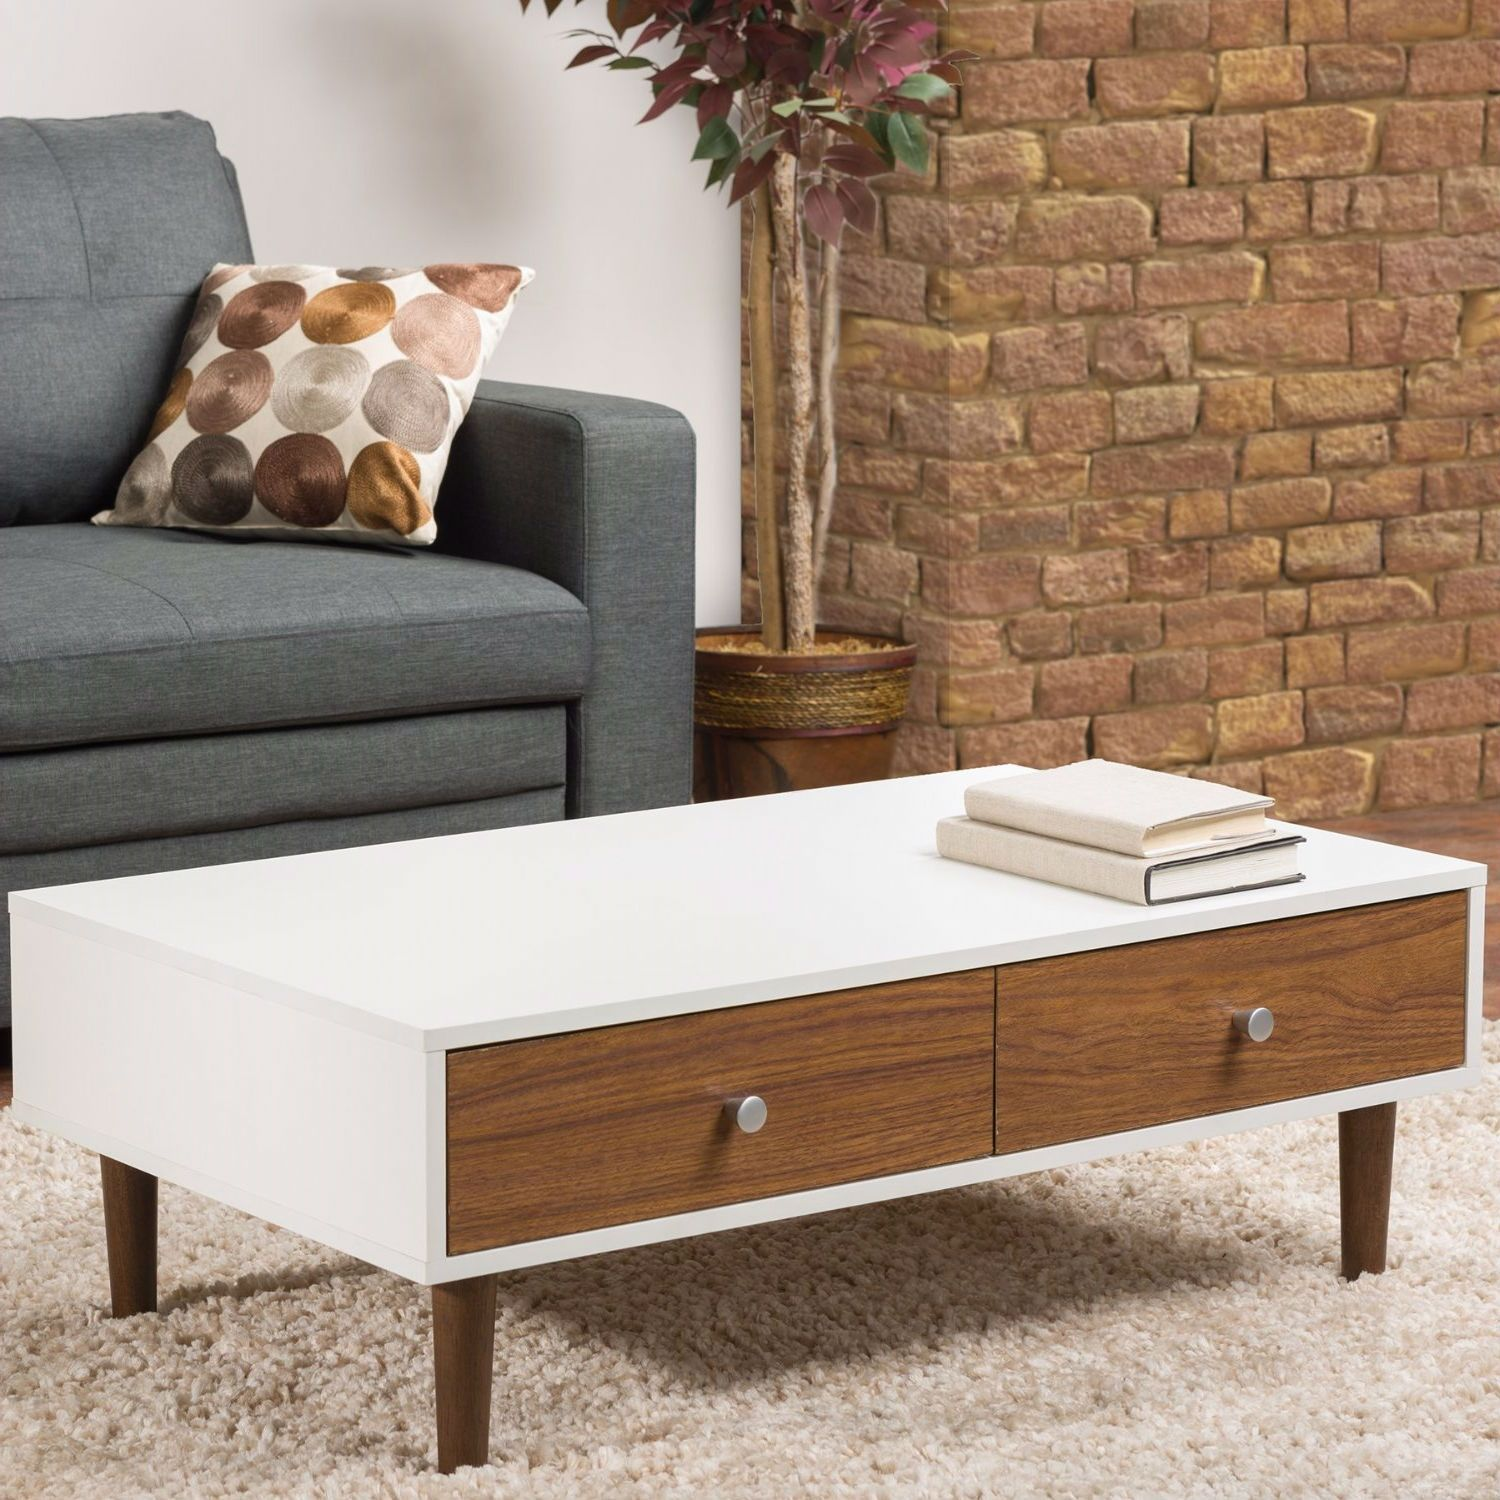 Haddon Plank Coffee Table With Drawers Coffee Table With Drawers Coffee Table Reclaimed Wood Coffee Table [ 1000 x 1000 Pixel ]